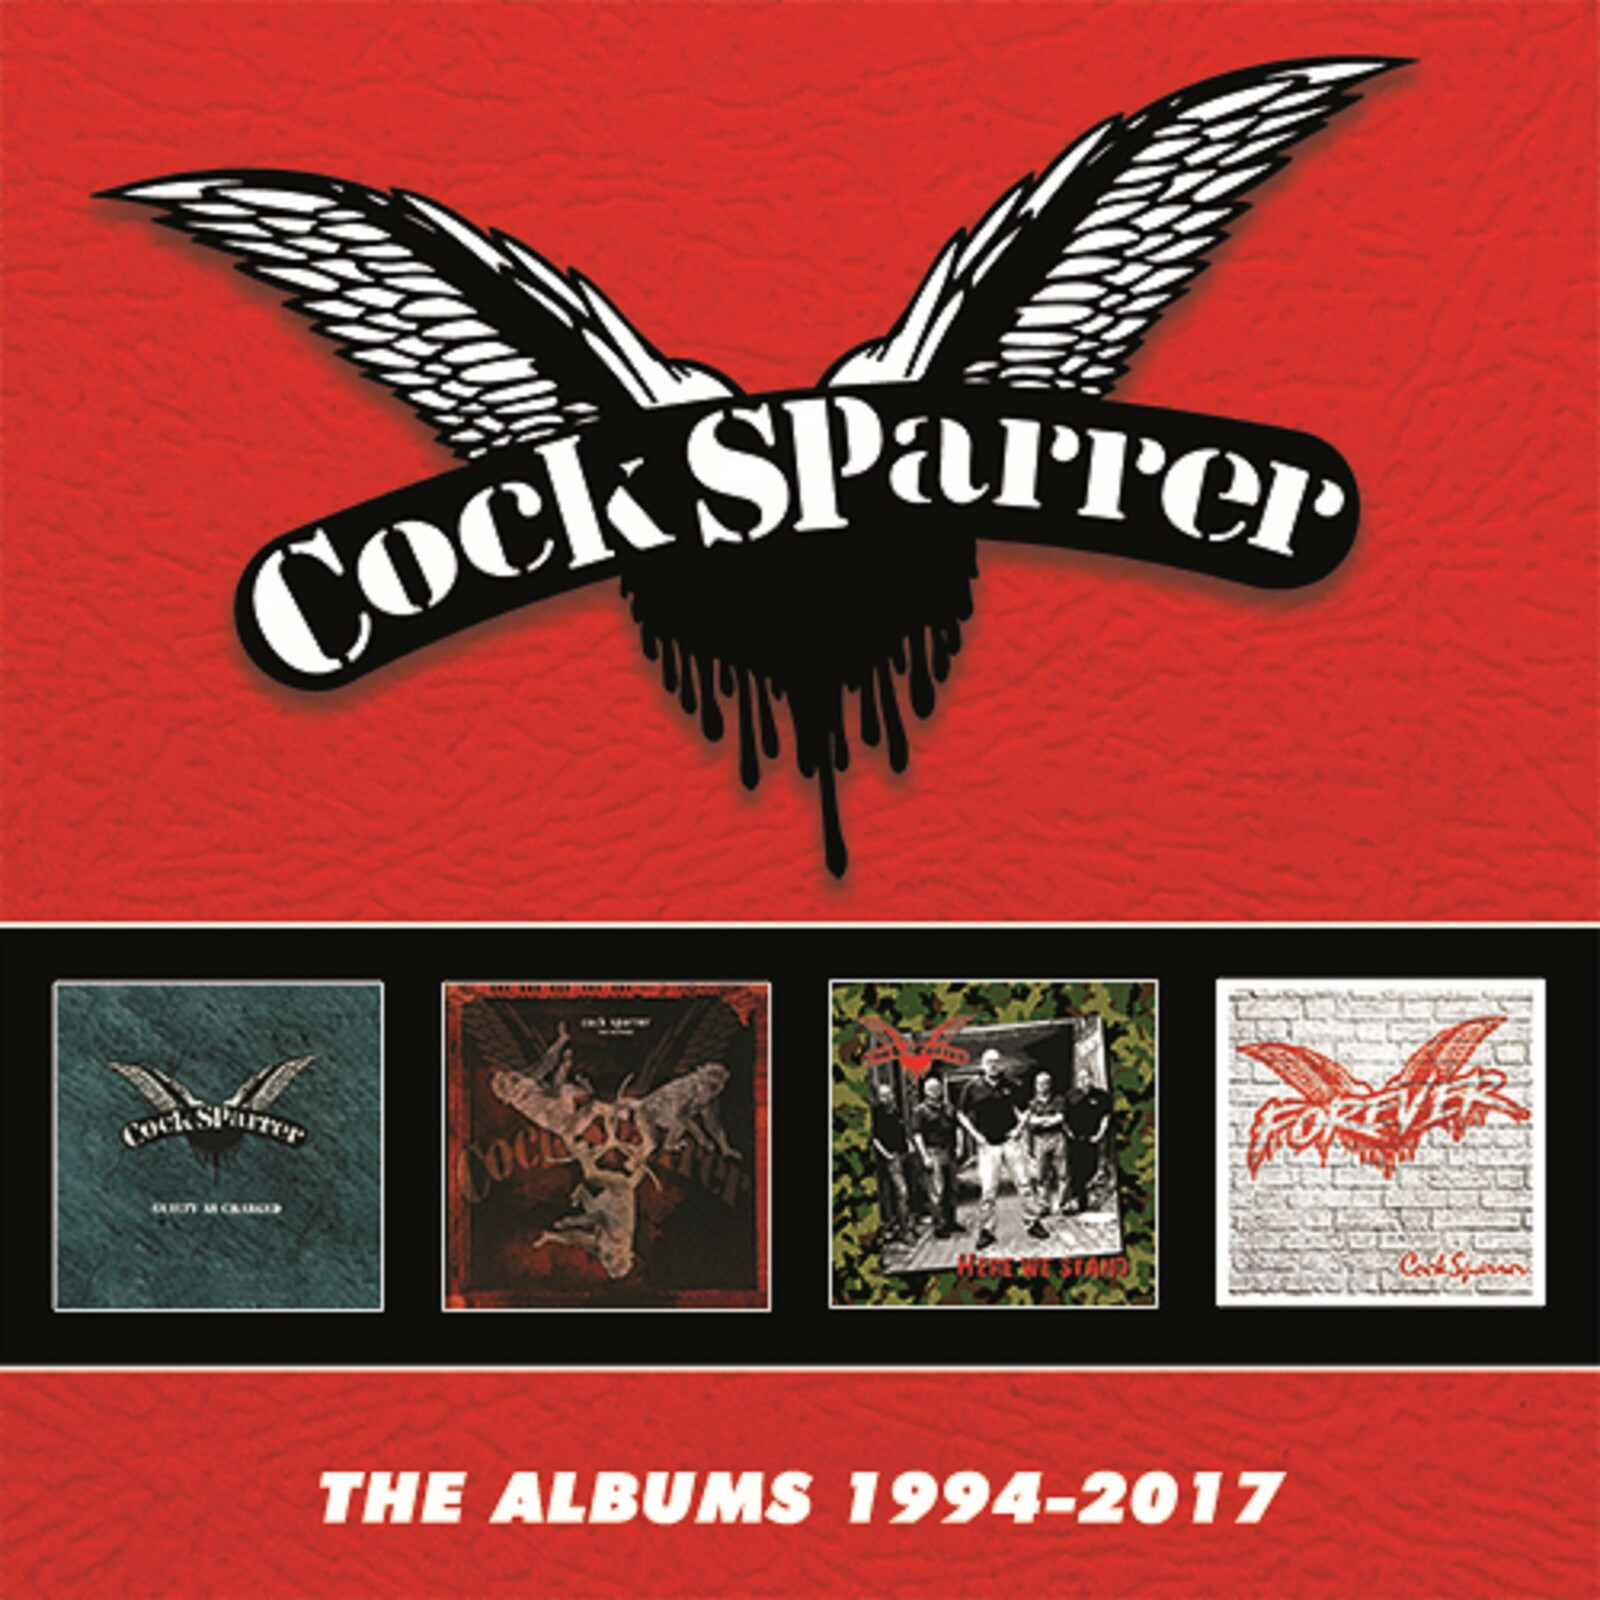 Cock Sparrer. The Albums 1994-2017 (4 CD)